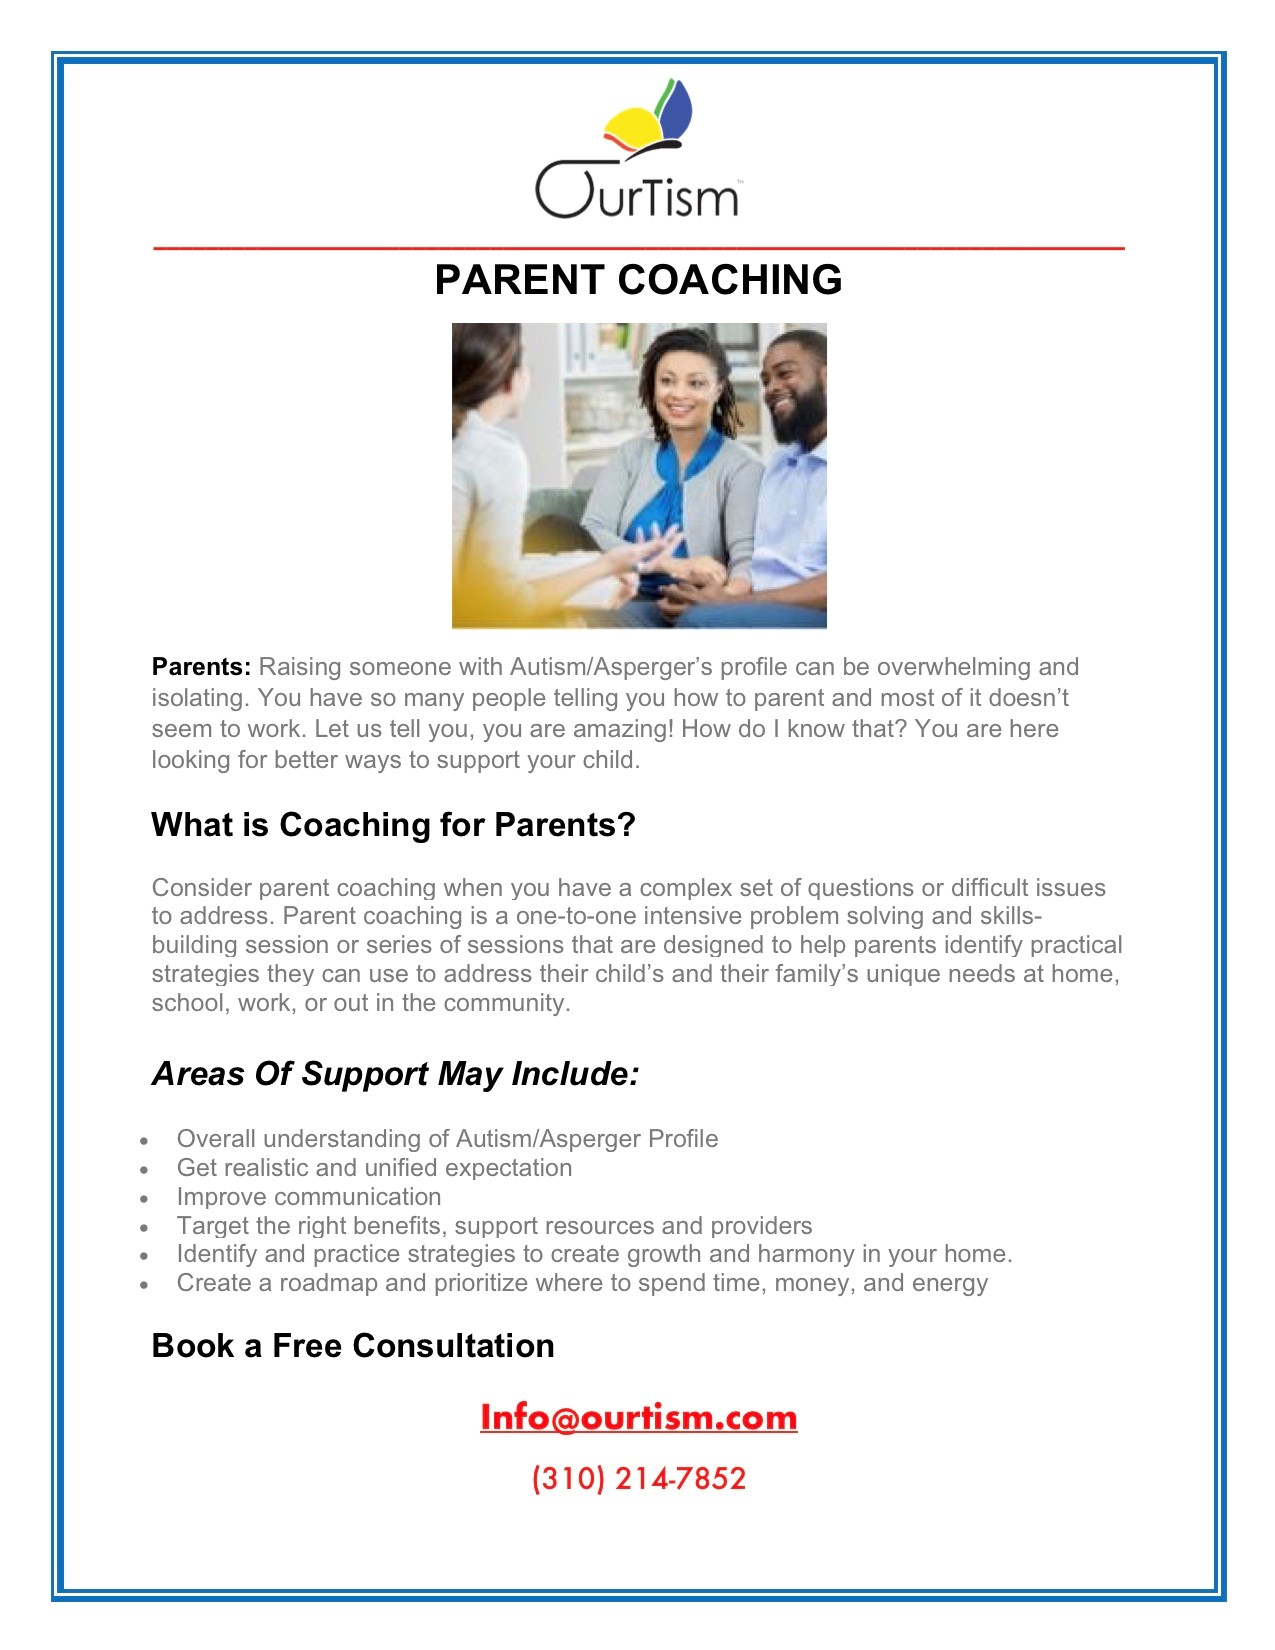 OurTism Parent Coaching | HaMercaz | The Jewish Federation of Greater Los Angeles